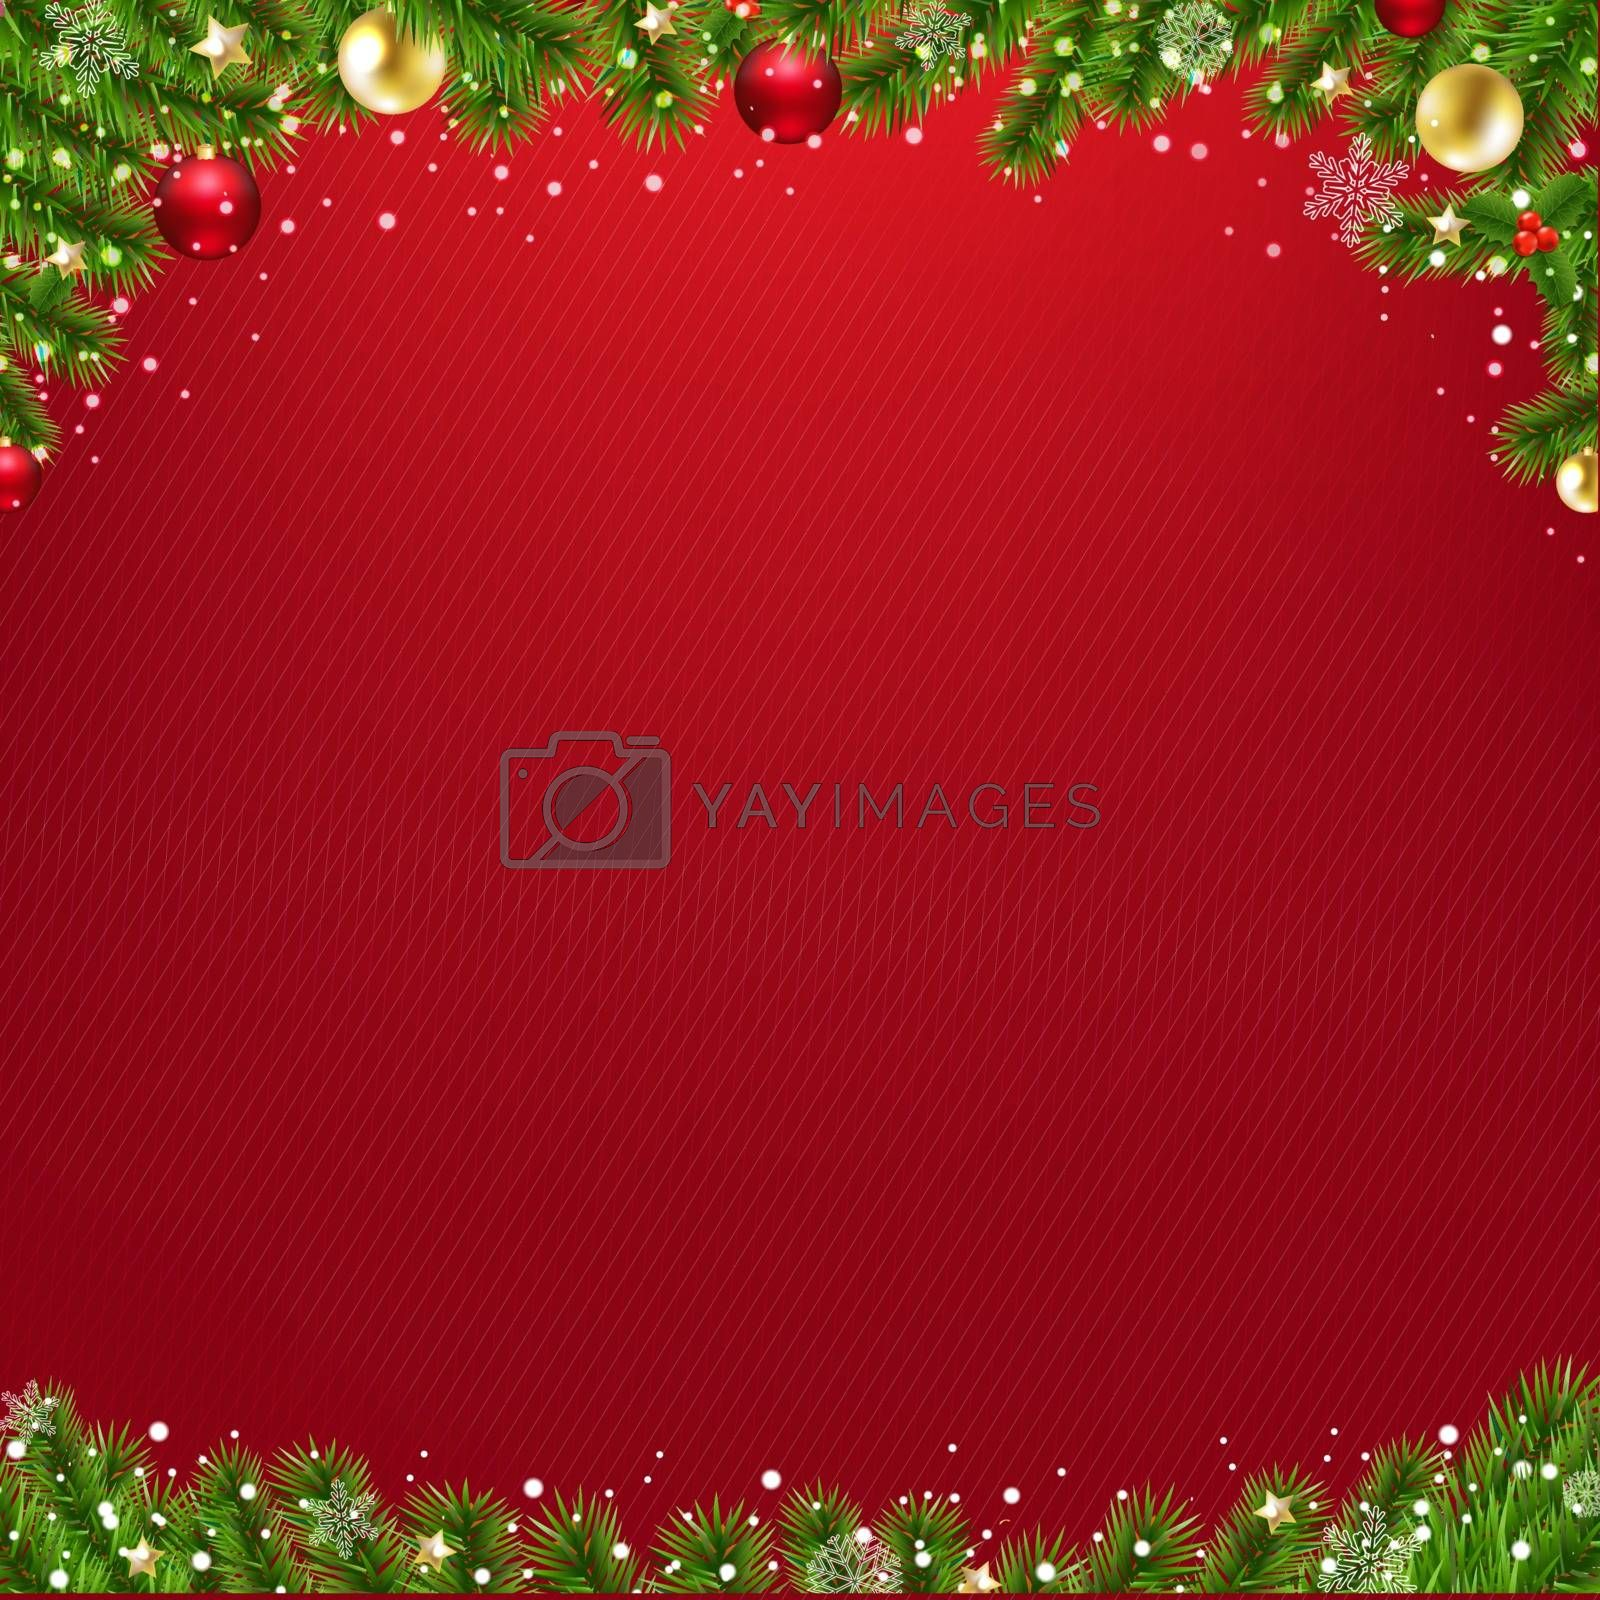 Christmas Card With Christmas Tree With Gradient Mesh, Vector Illustration